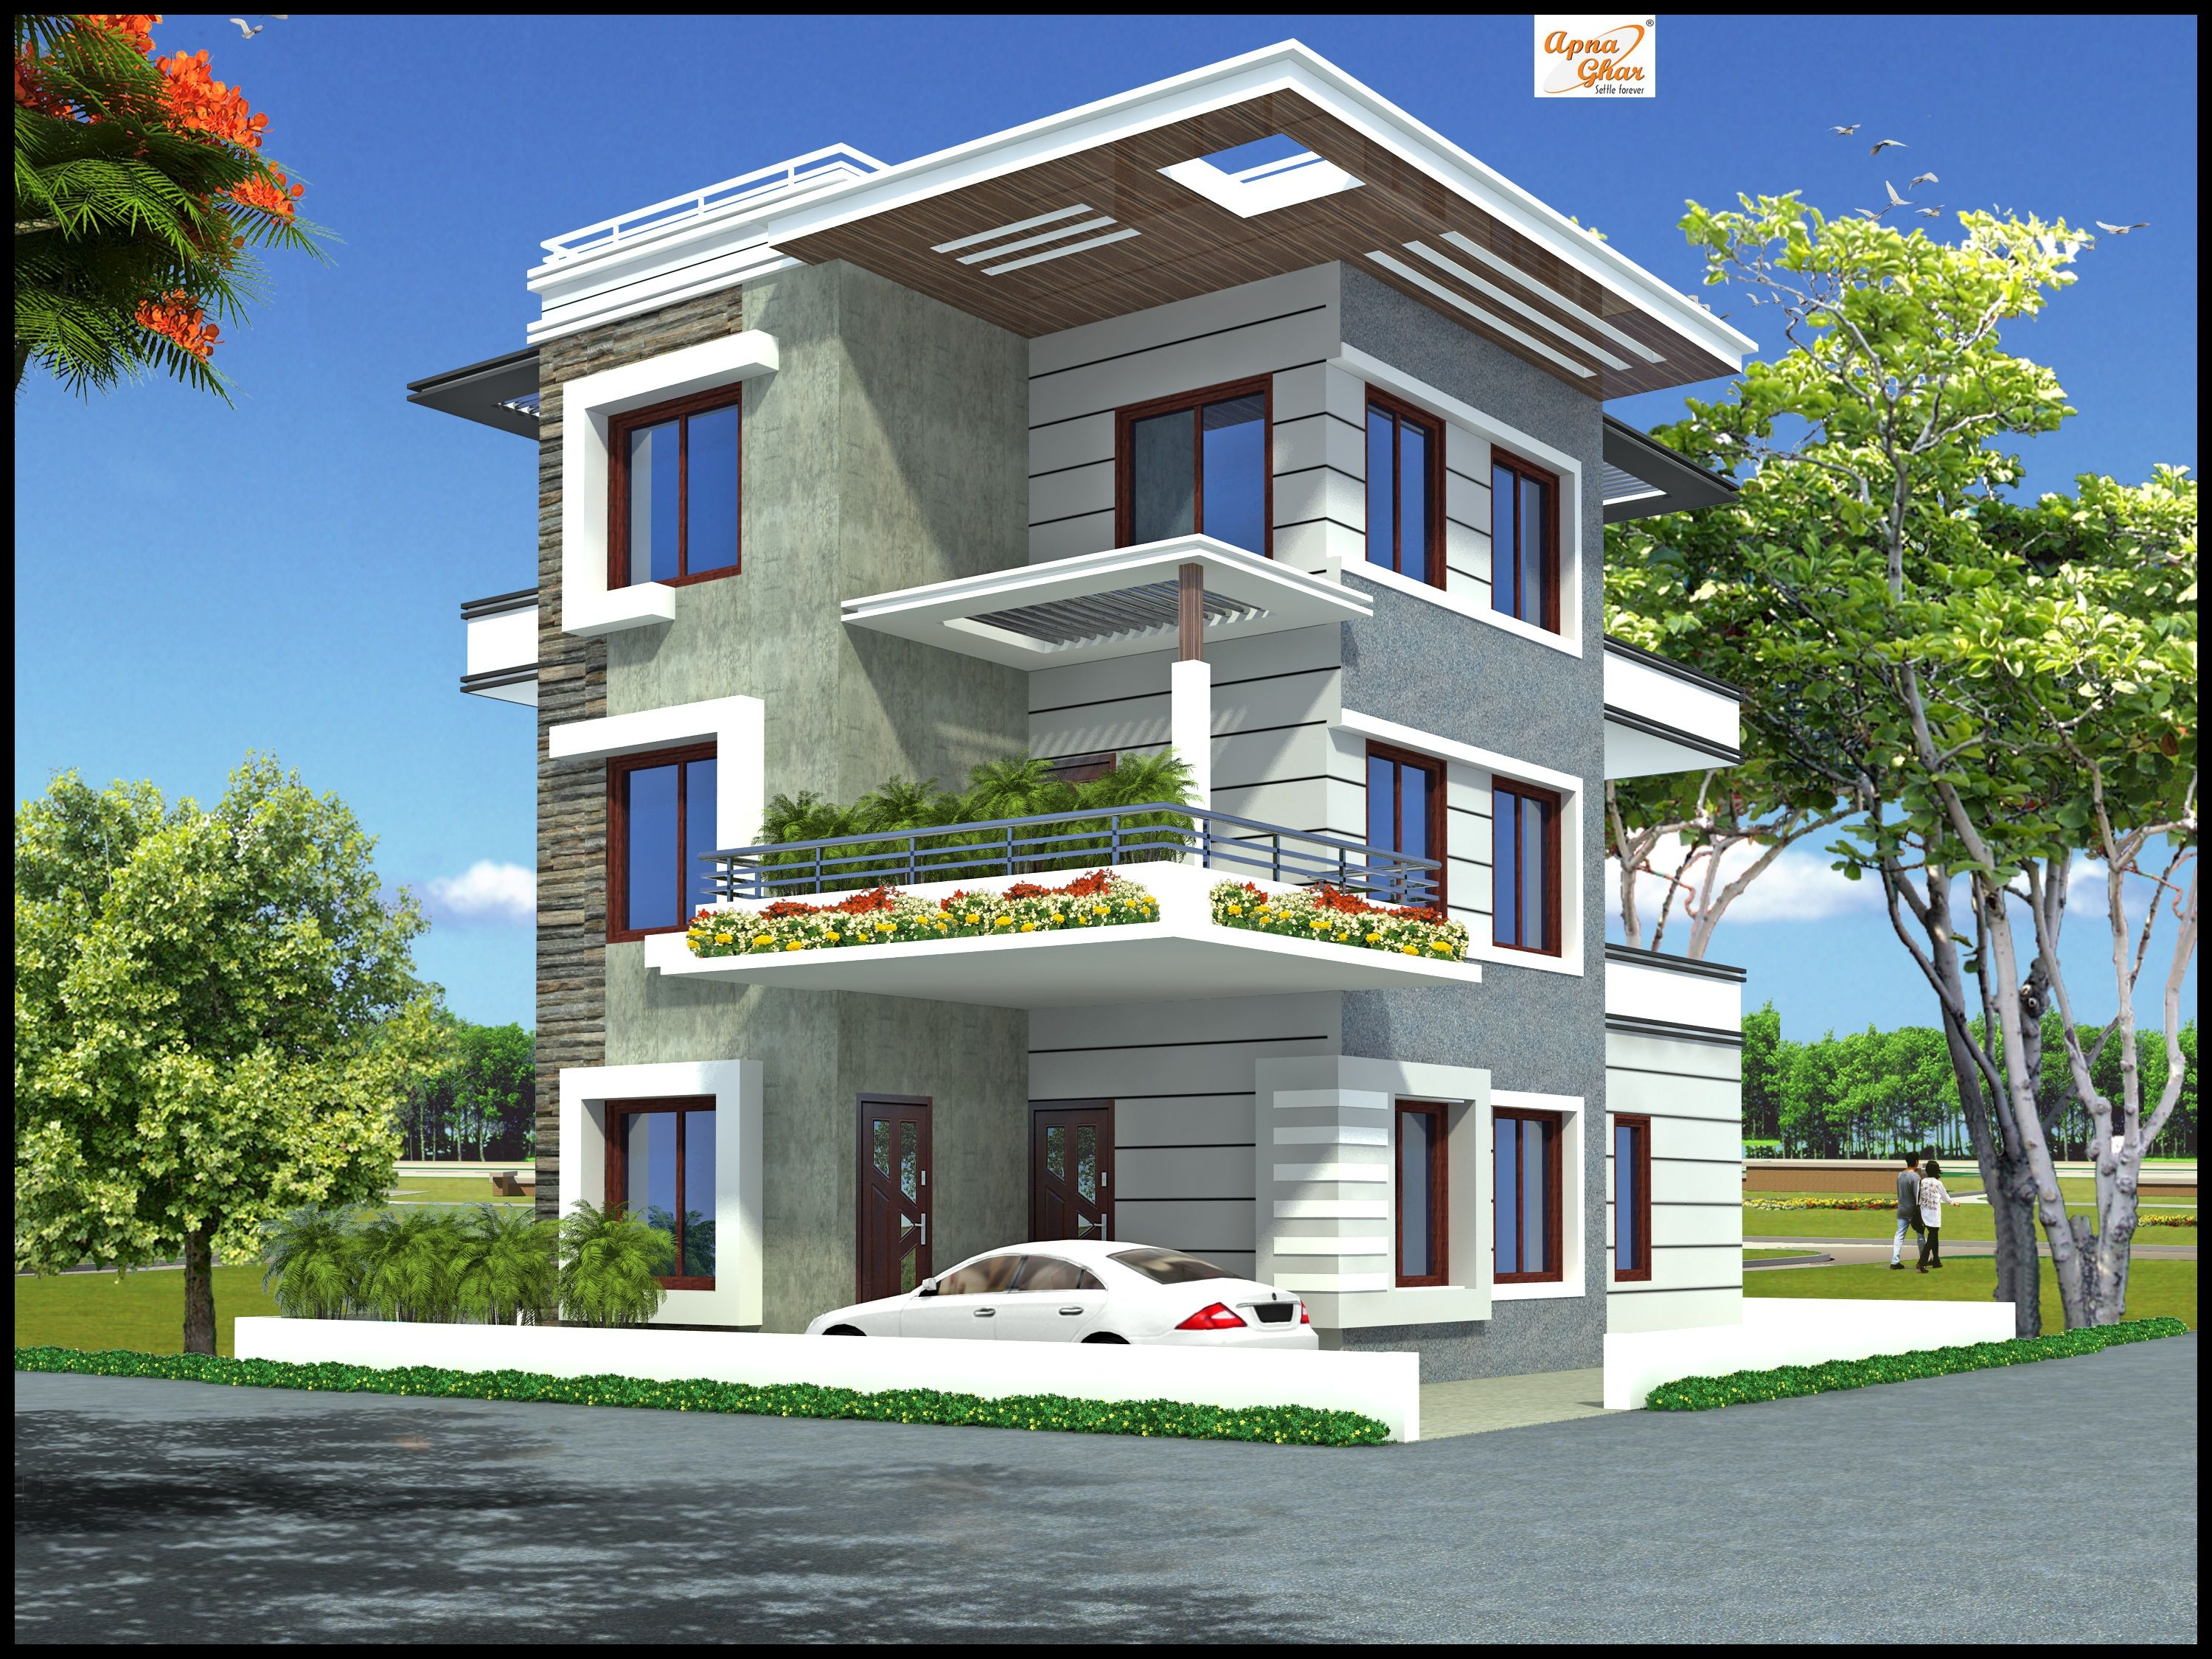 5 Bedroom Modern 3 Floor House Design Area 192 Sq Mts 12m X 16m Click On This Link Http Ww House Front Design Home Building Design Duplex House Plans